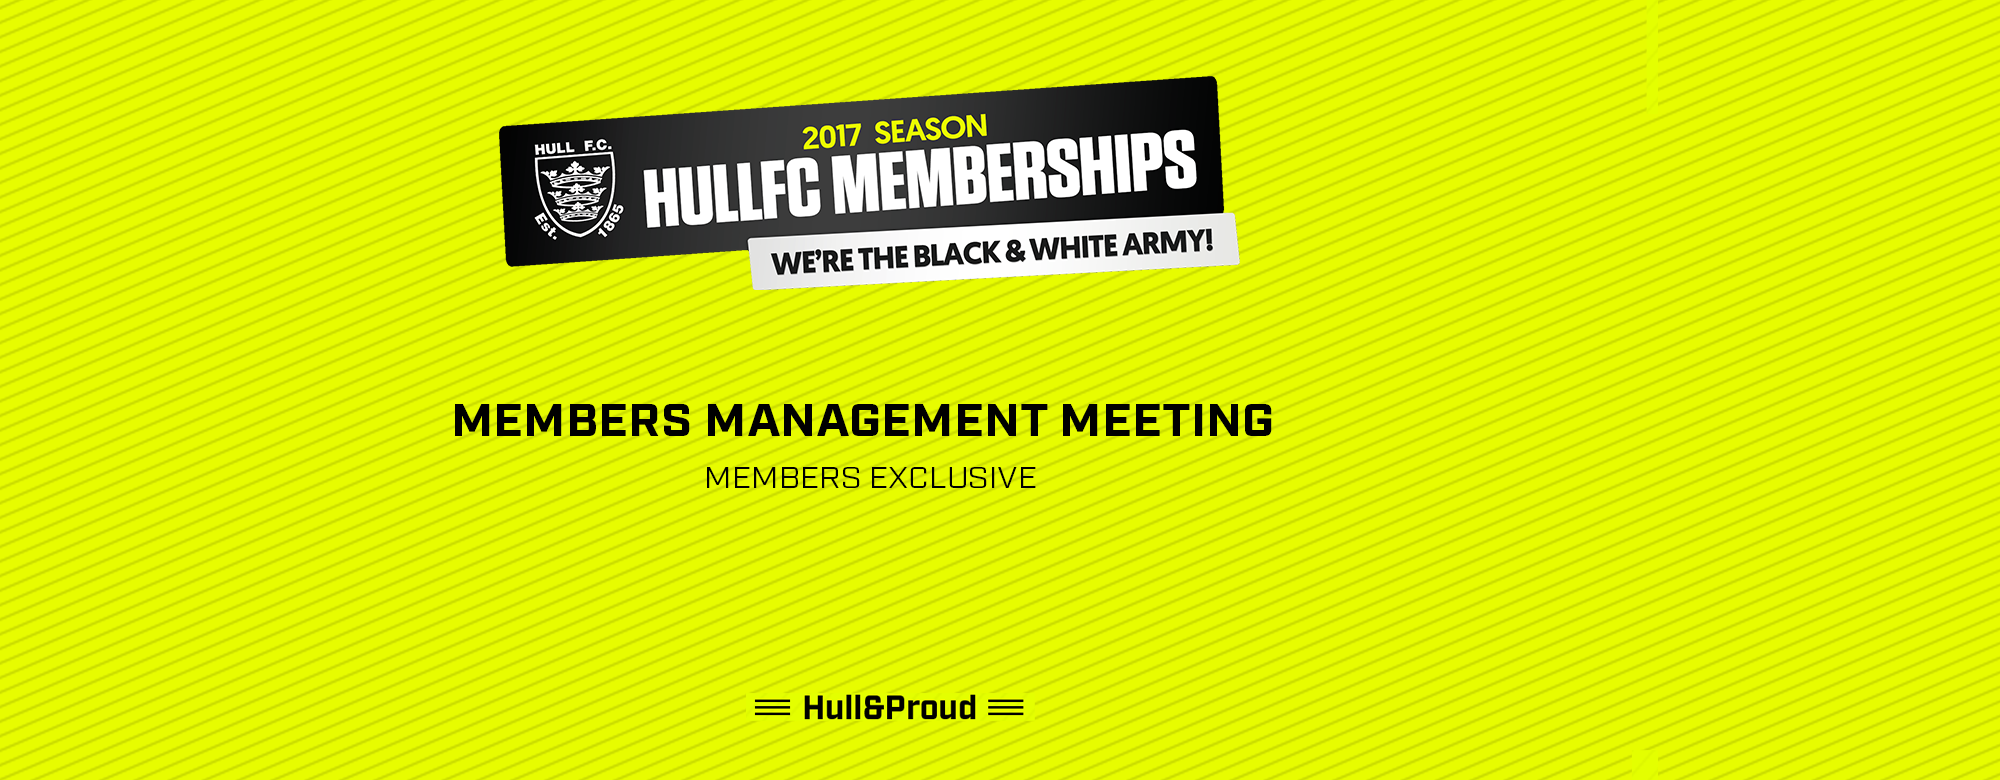 Meet the Chairman at This Month's Members Management Meeting!